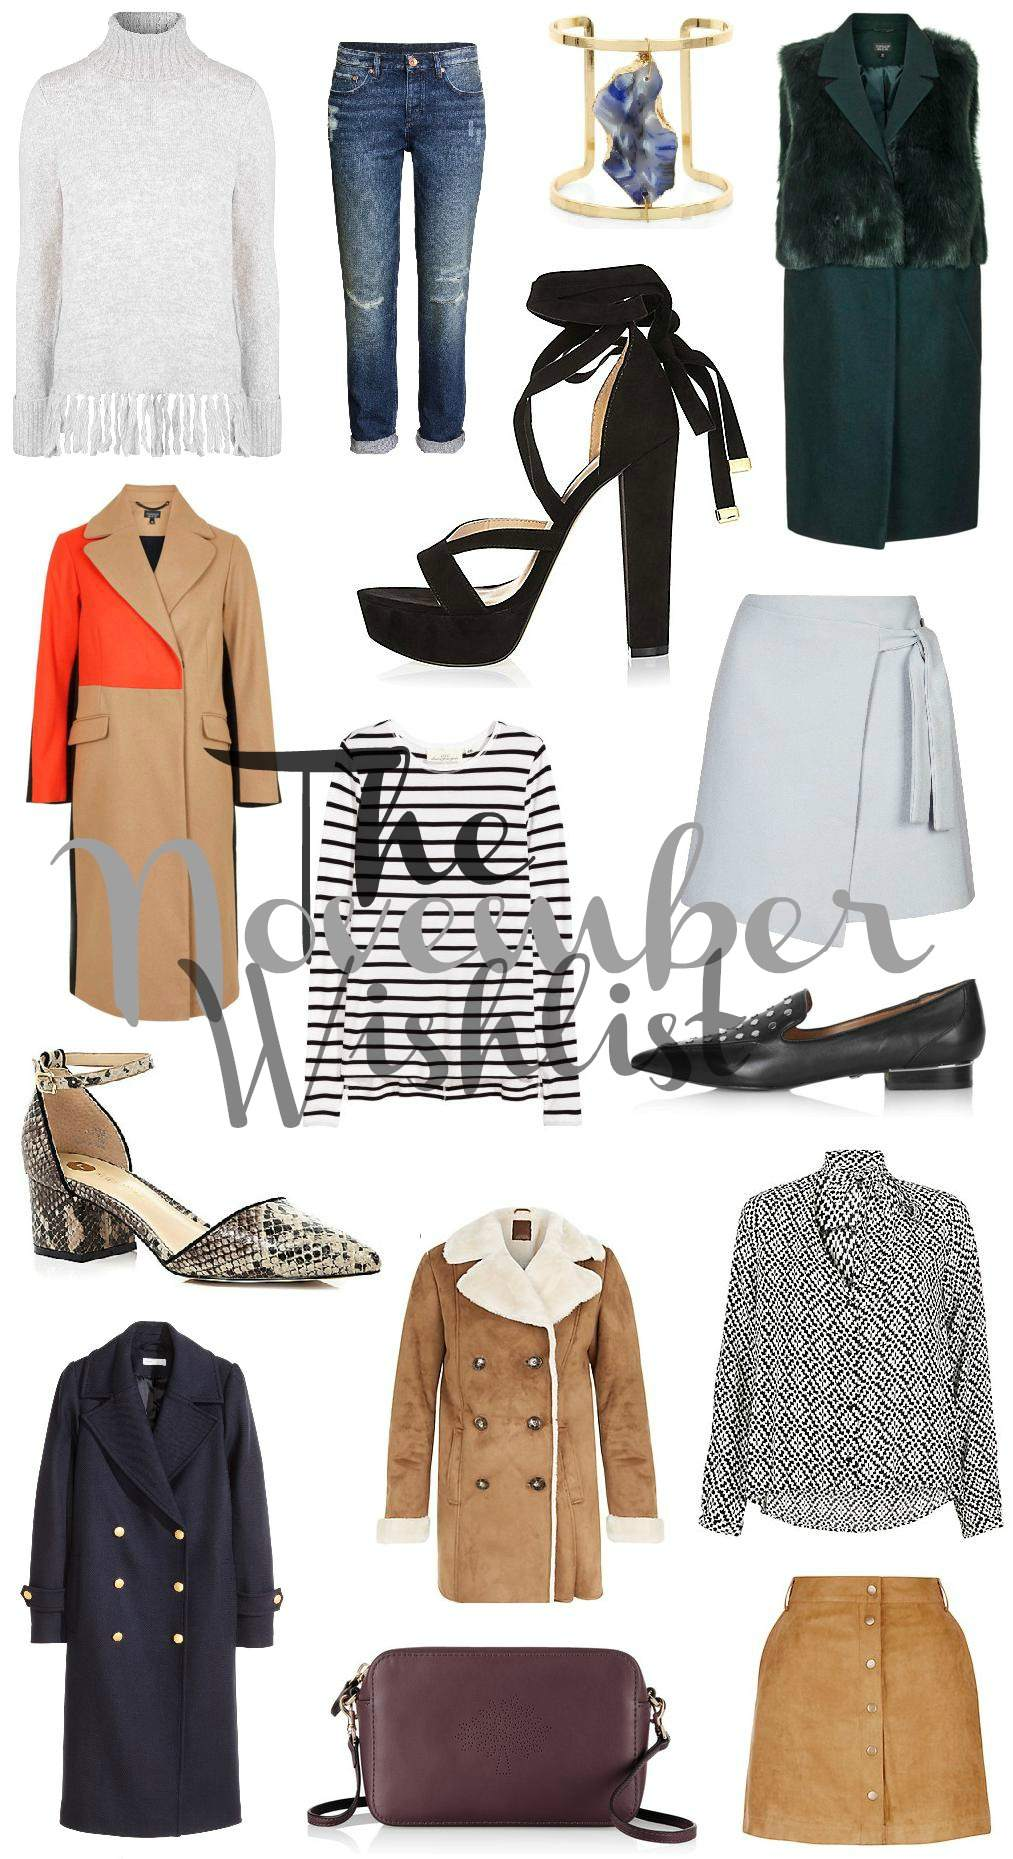 november high street wishlist